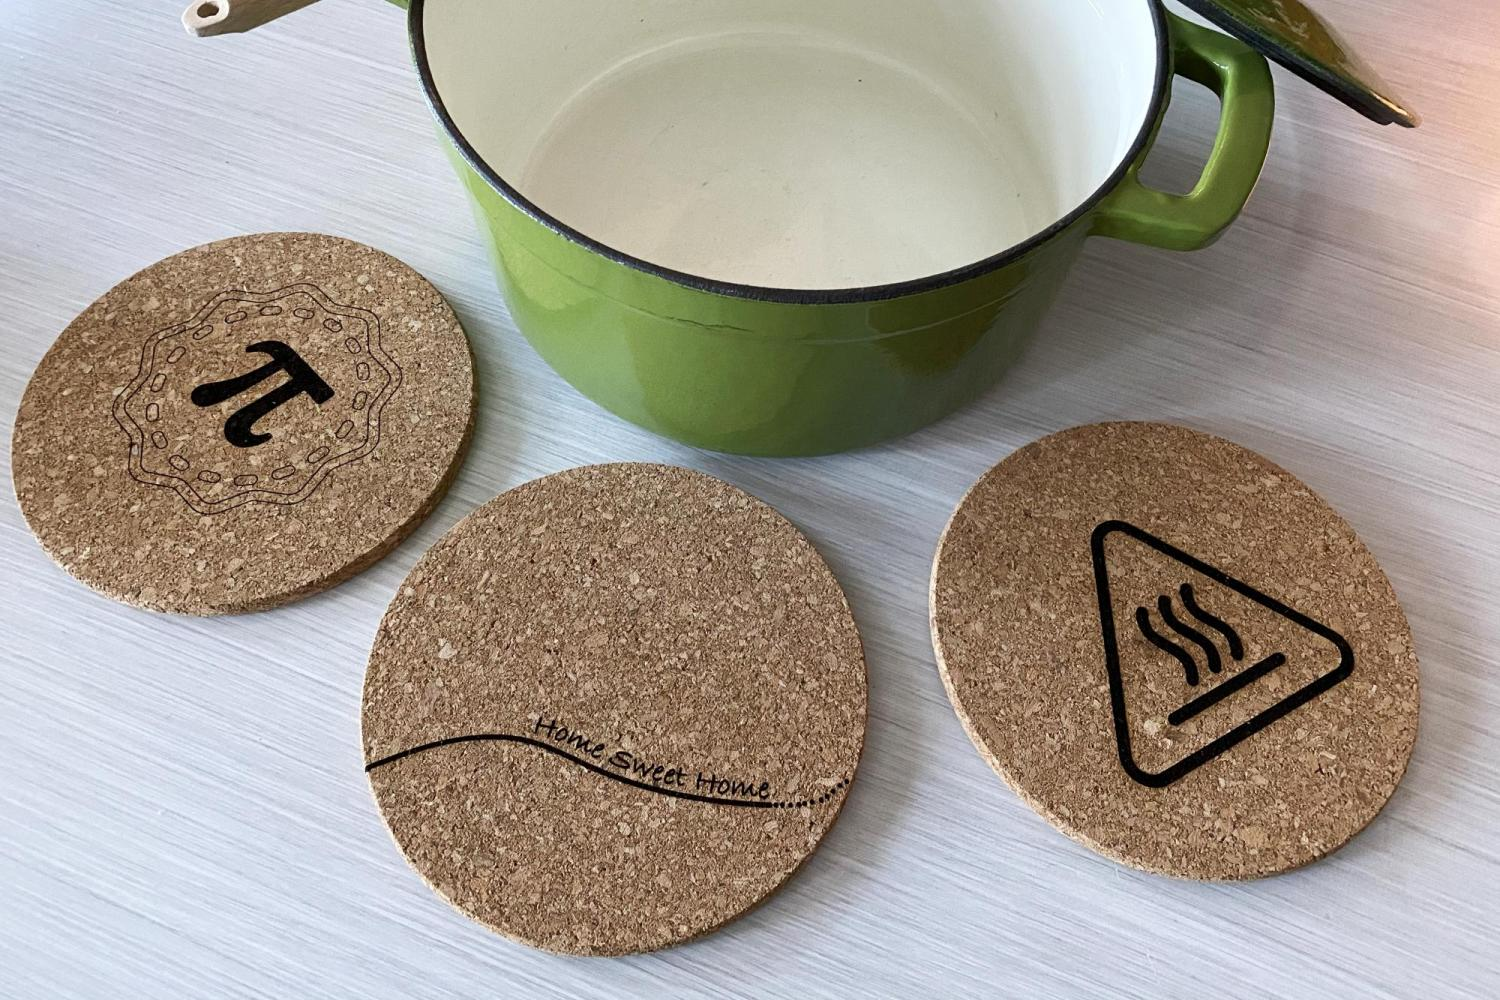 trivets on a table